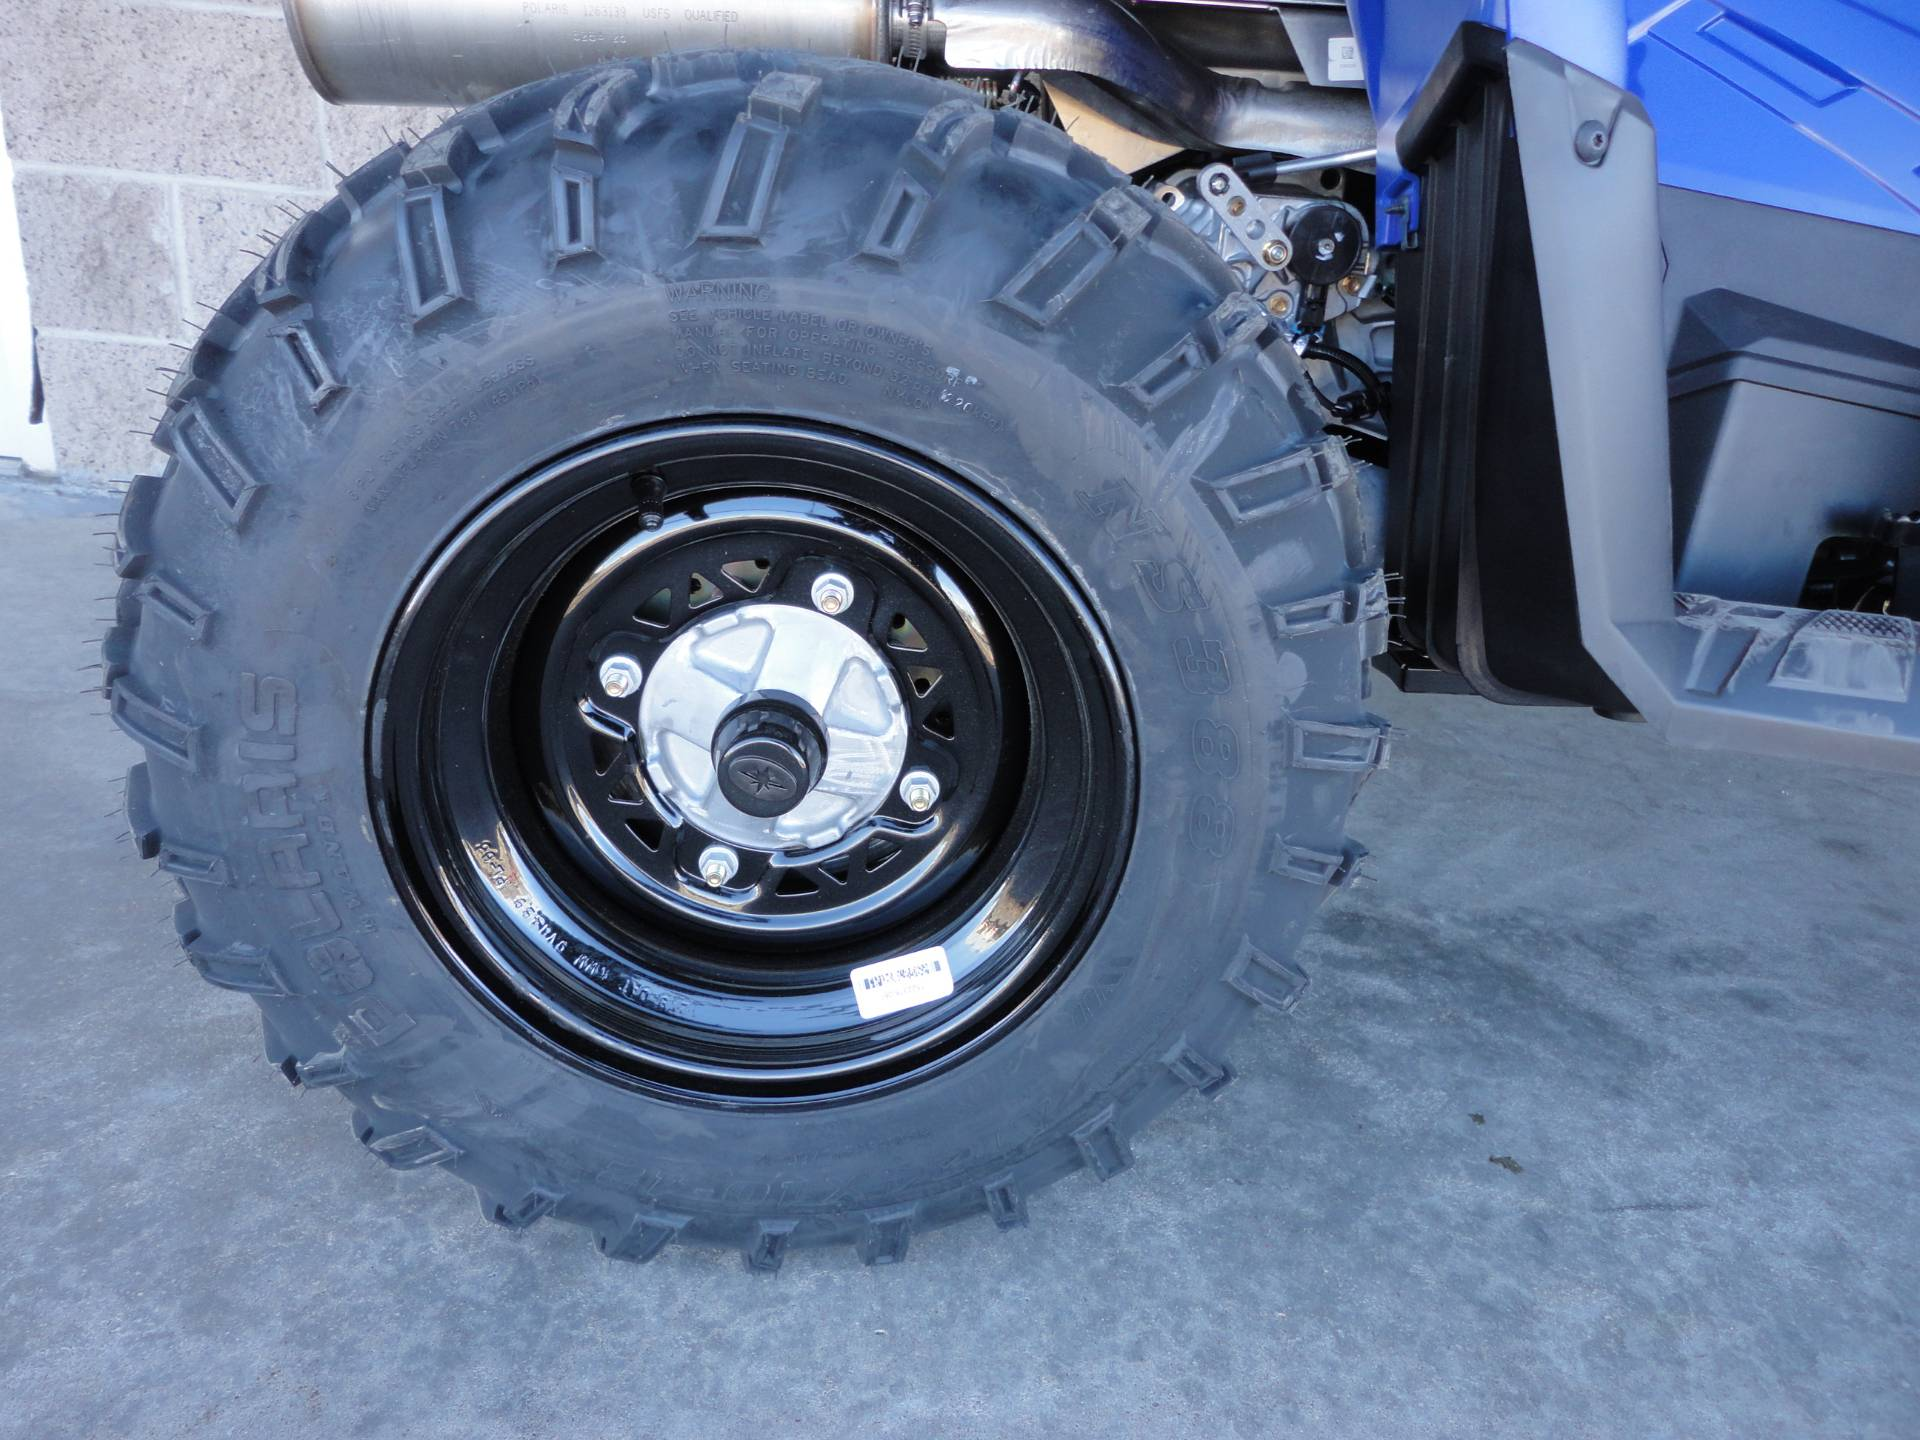 2020 Polaris Sportsman 450 H.O. Utility Package in Denver, Colorado - Photo 16